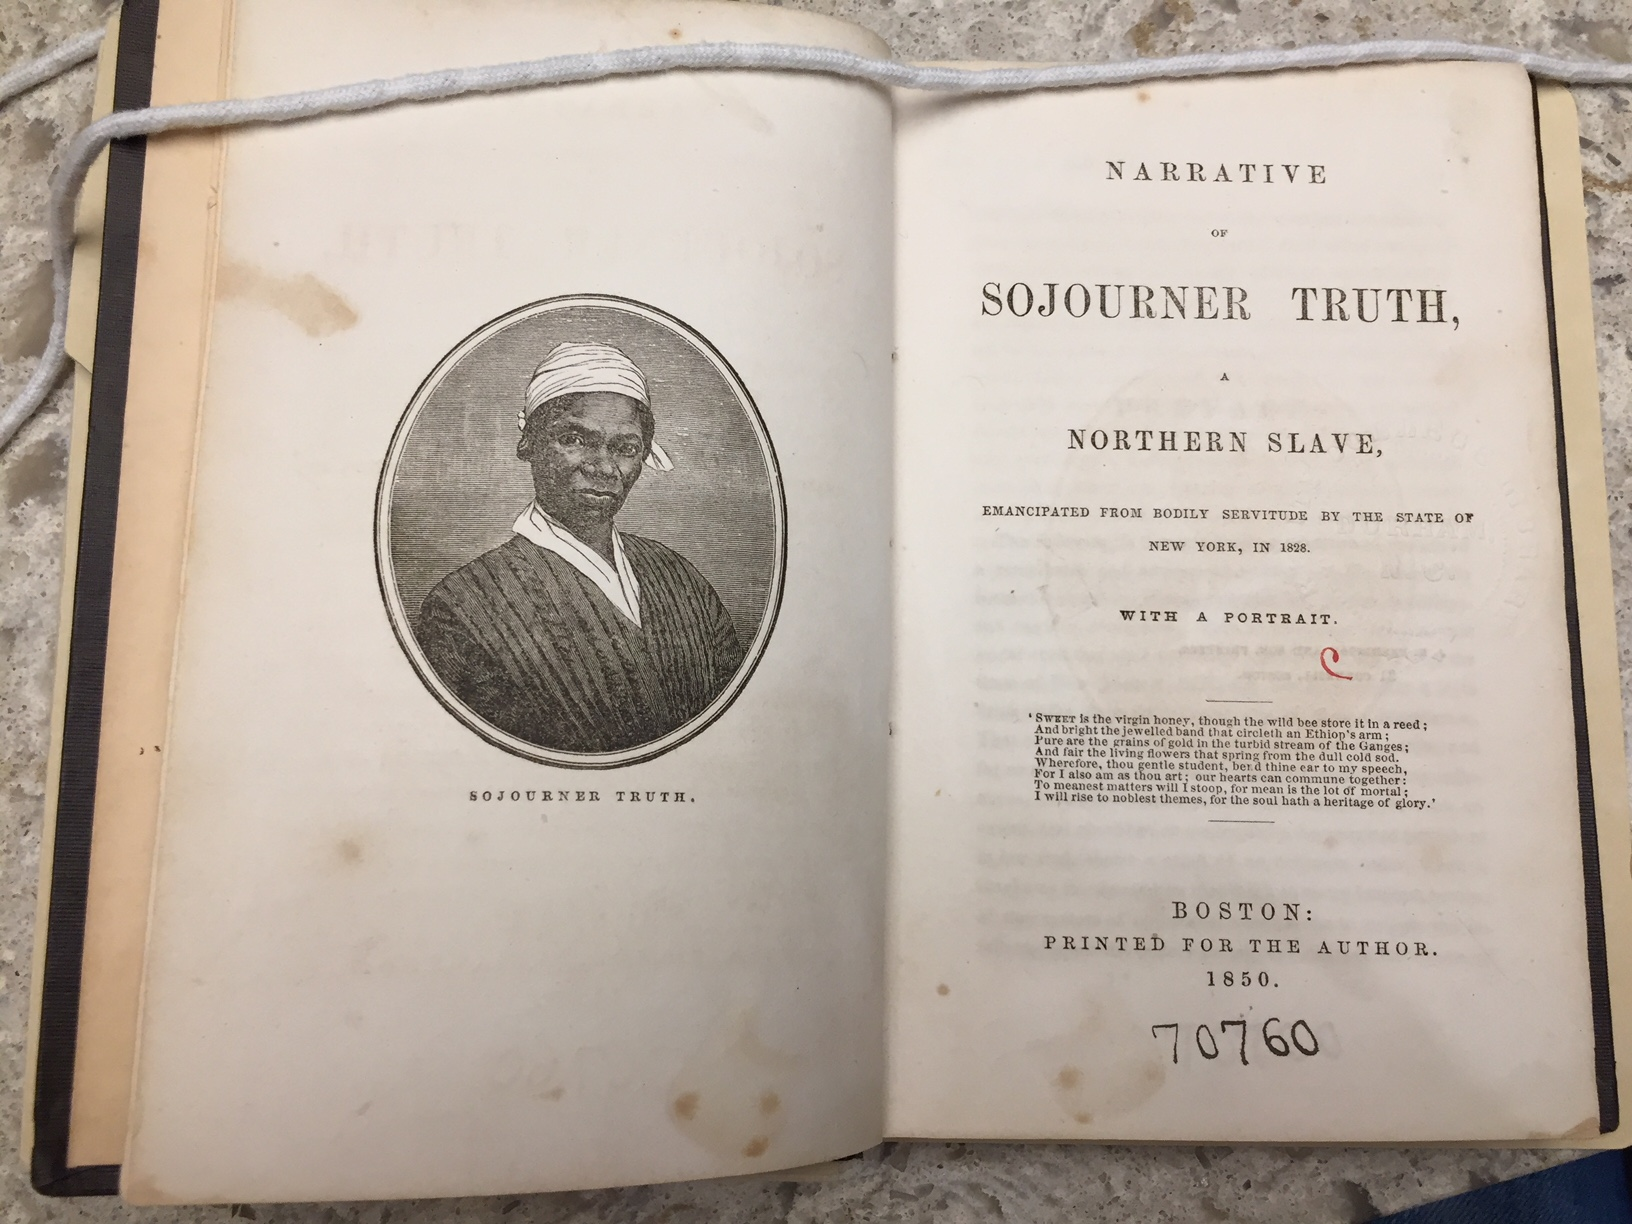 1850 edition of Narrative of Sojourner Truth